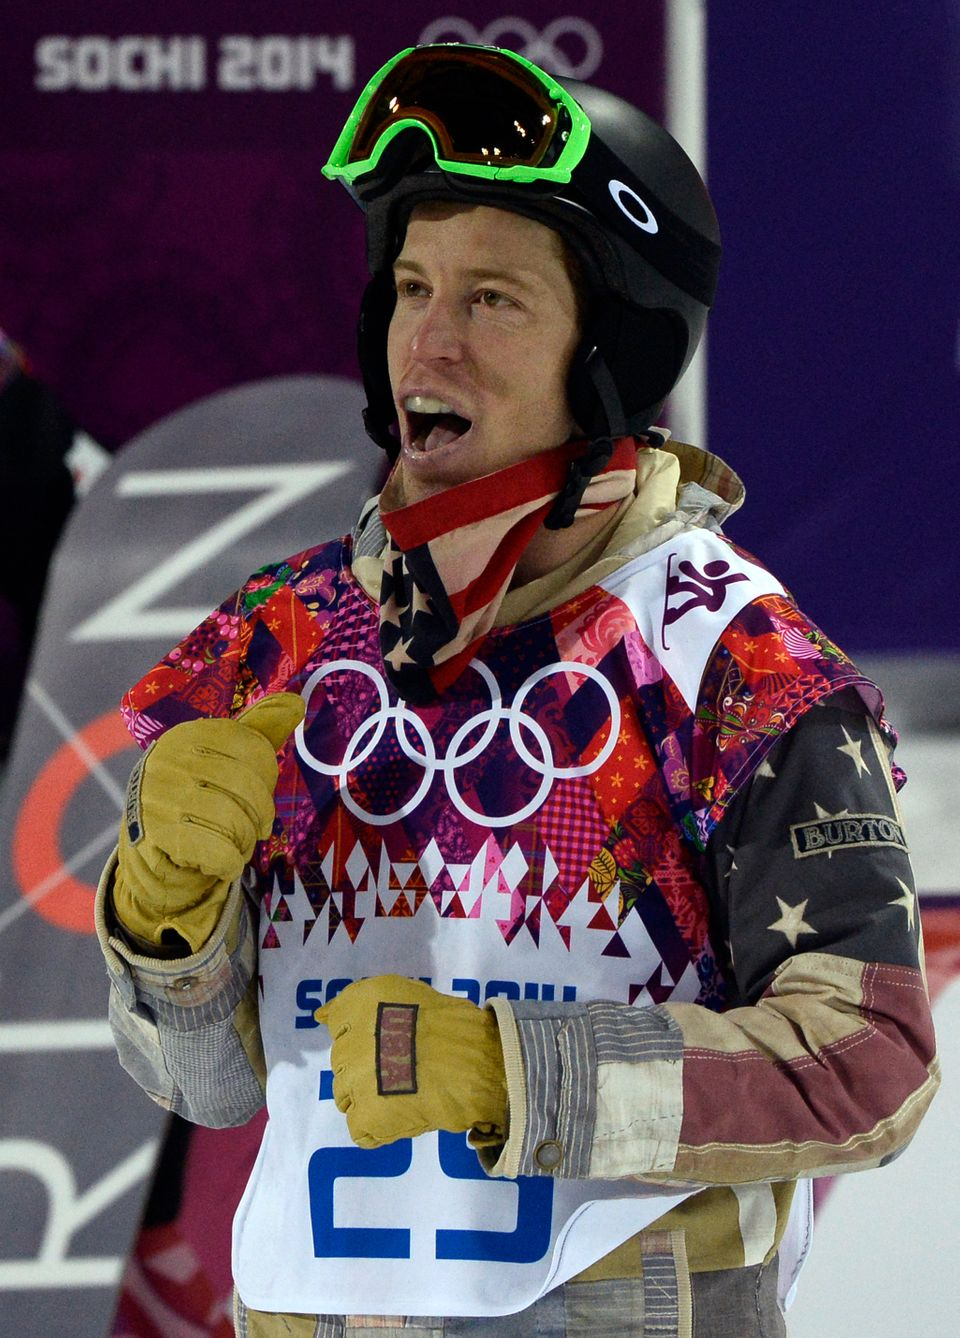 US Shaun White watches his score  in the Men's Snowboard Halfpipe Final at the Rosa Khutor Extreme Park during the Sochi Wint